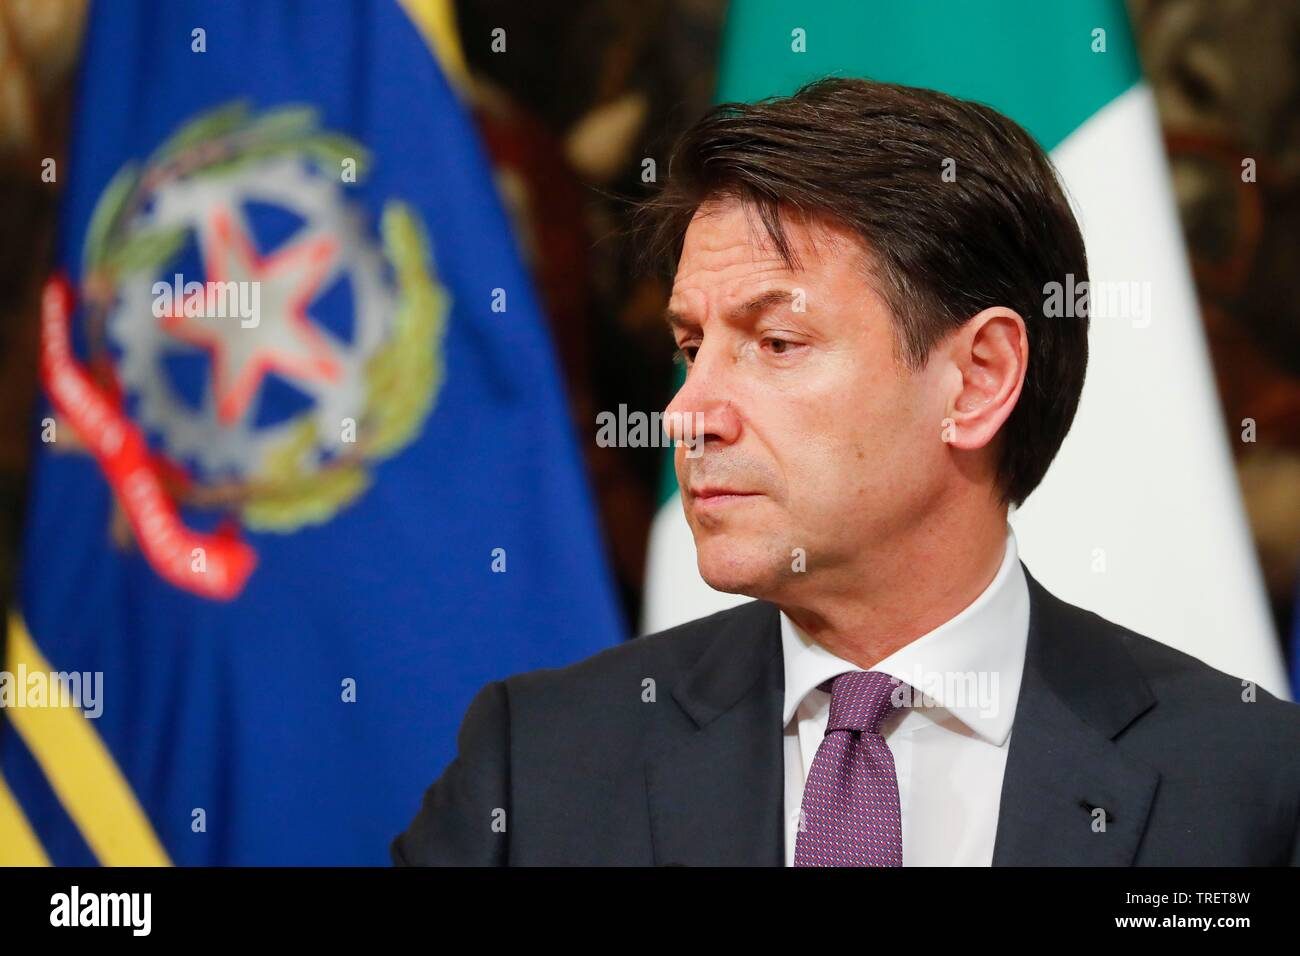 Italy, Rome, June 3, 2019 : Italian Prime Minister Giuseppe Conte holds a press conference. Giuseppe Conte warned the two ruling coalition parties to - Stock Image